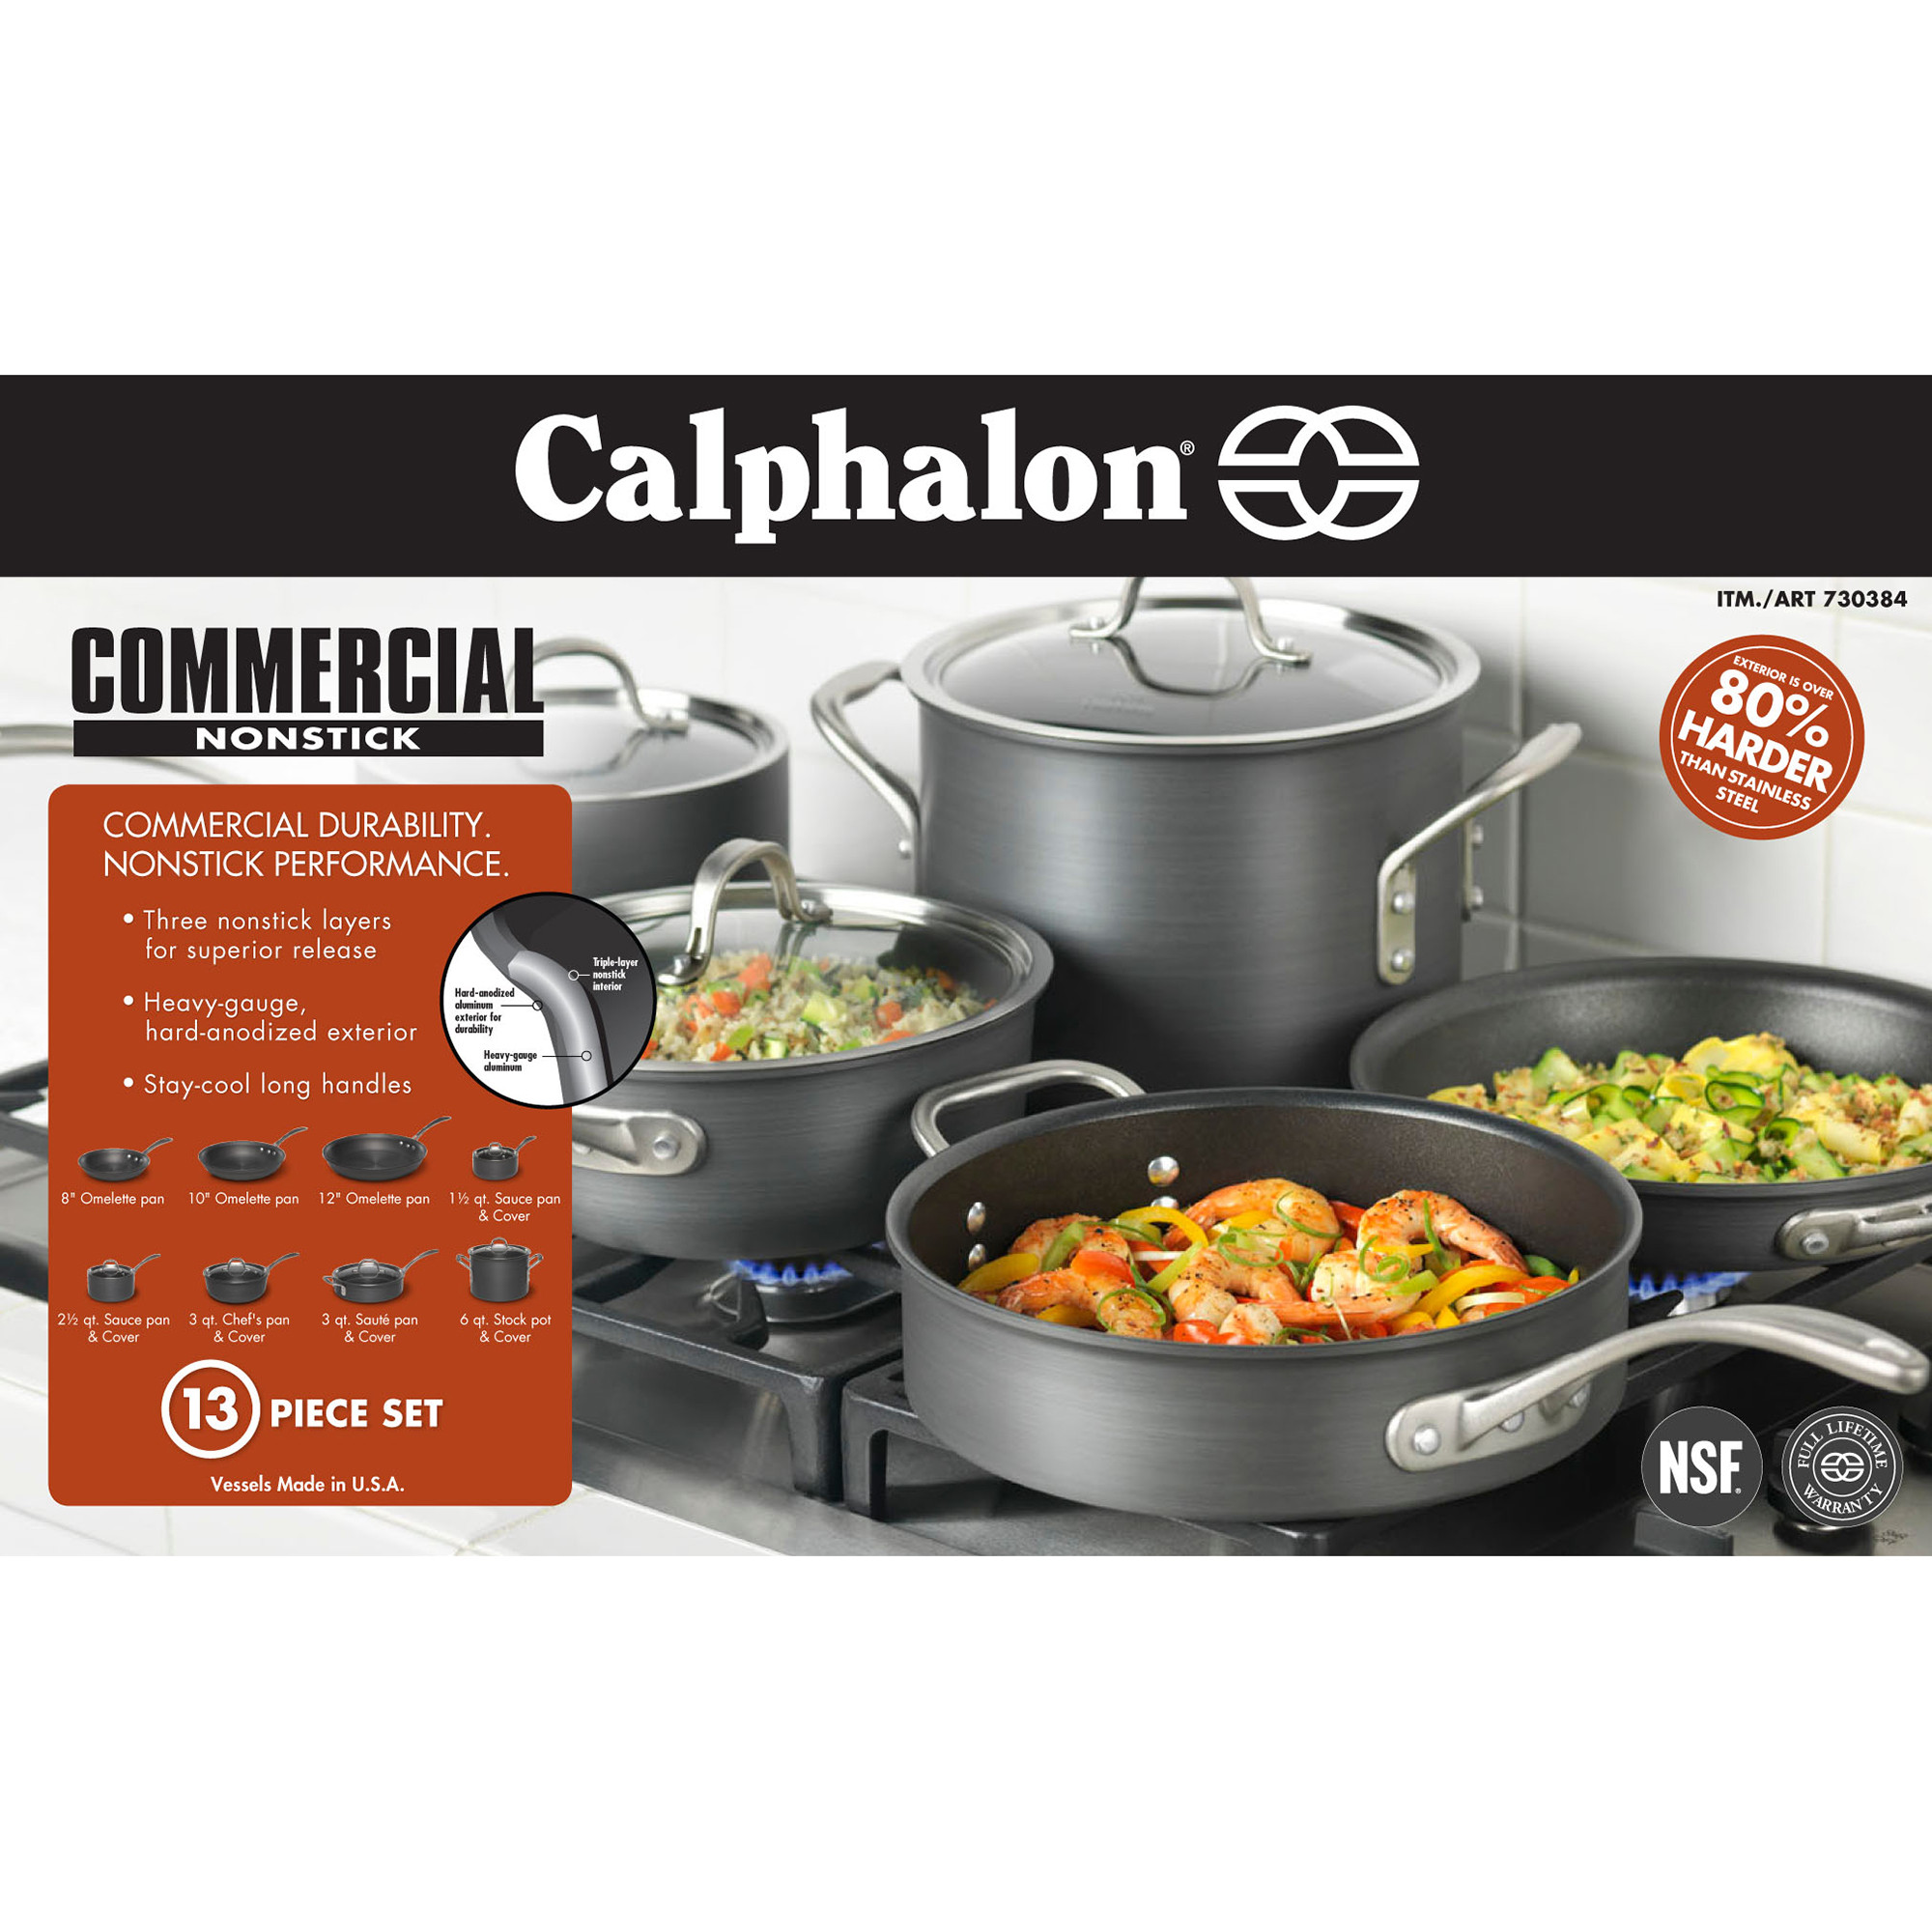 Calphalon 13-piece Hard Anodized Cookware Set